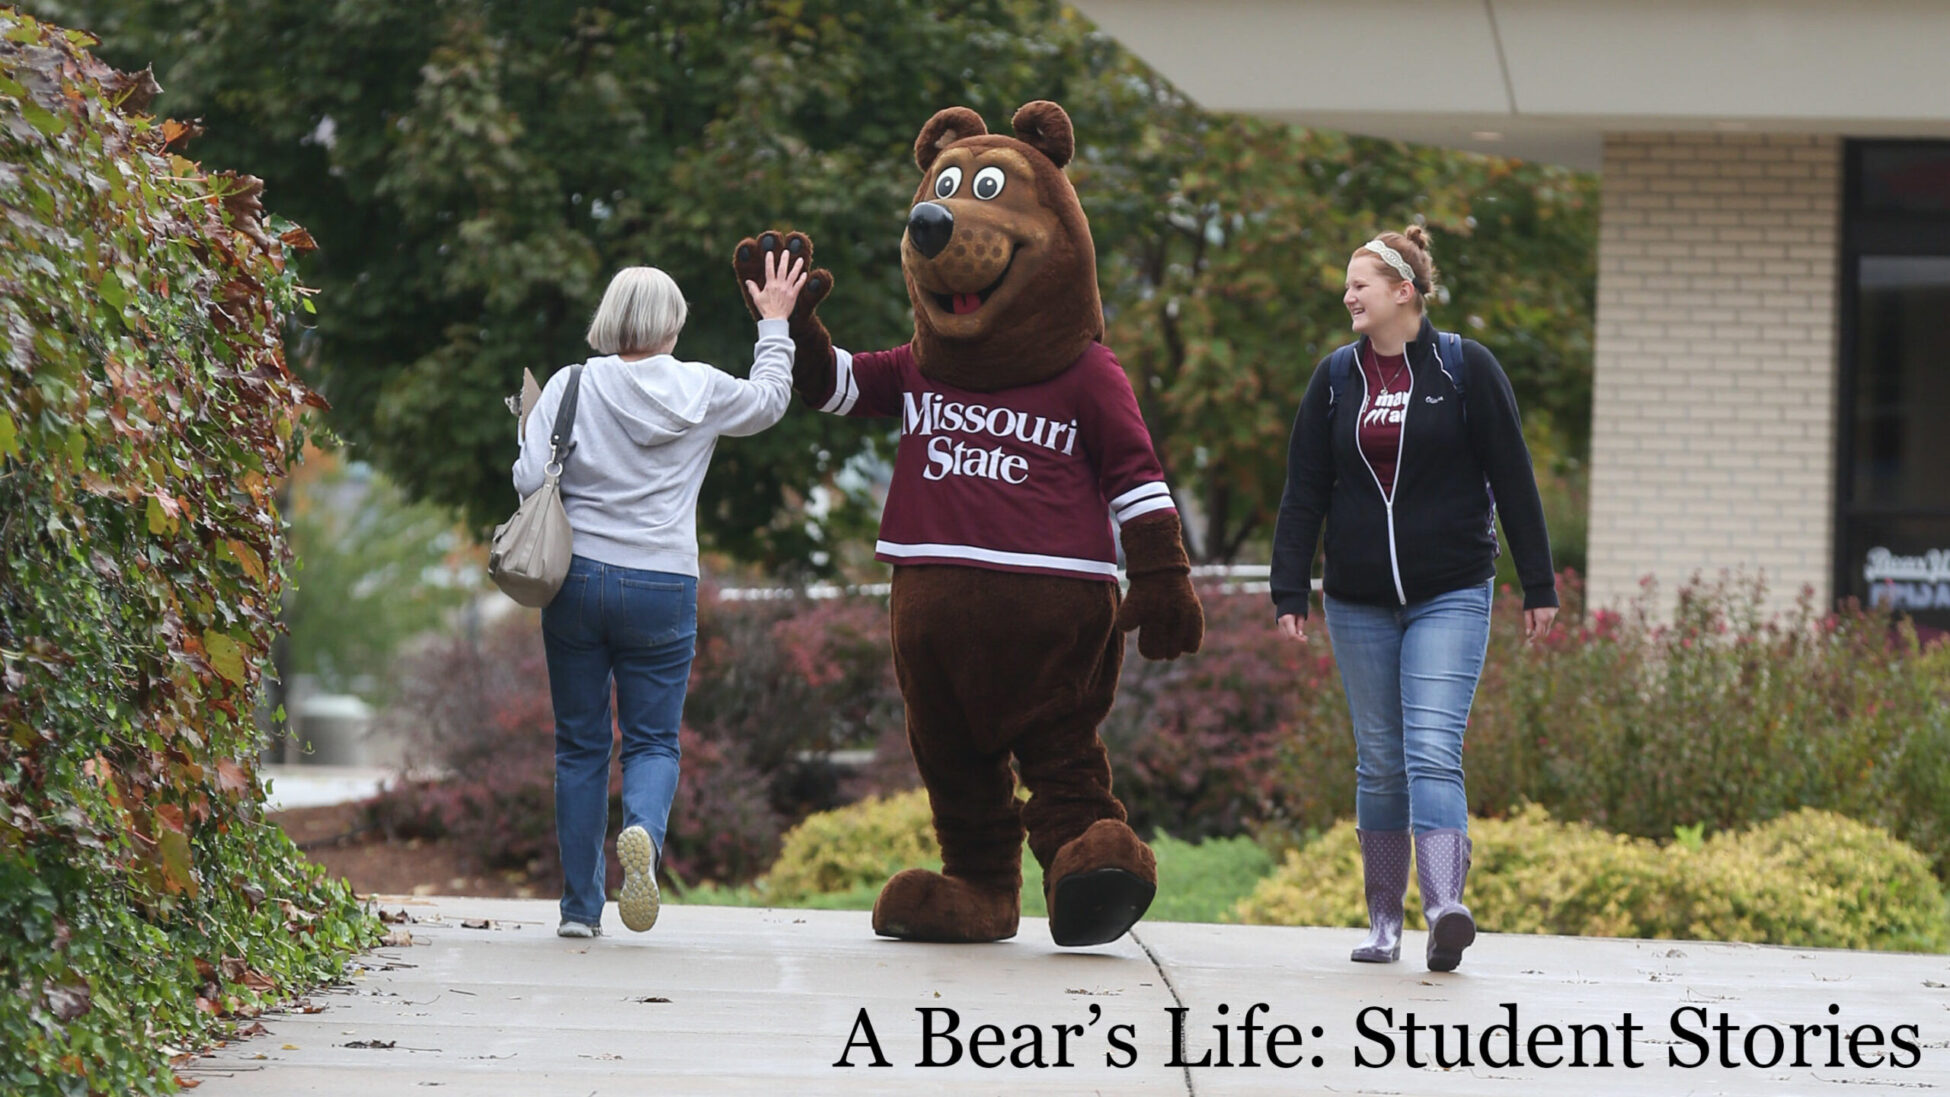 Boomer giving someone a high five; text on the photo says 'A Bear's Life: Student Stories""